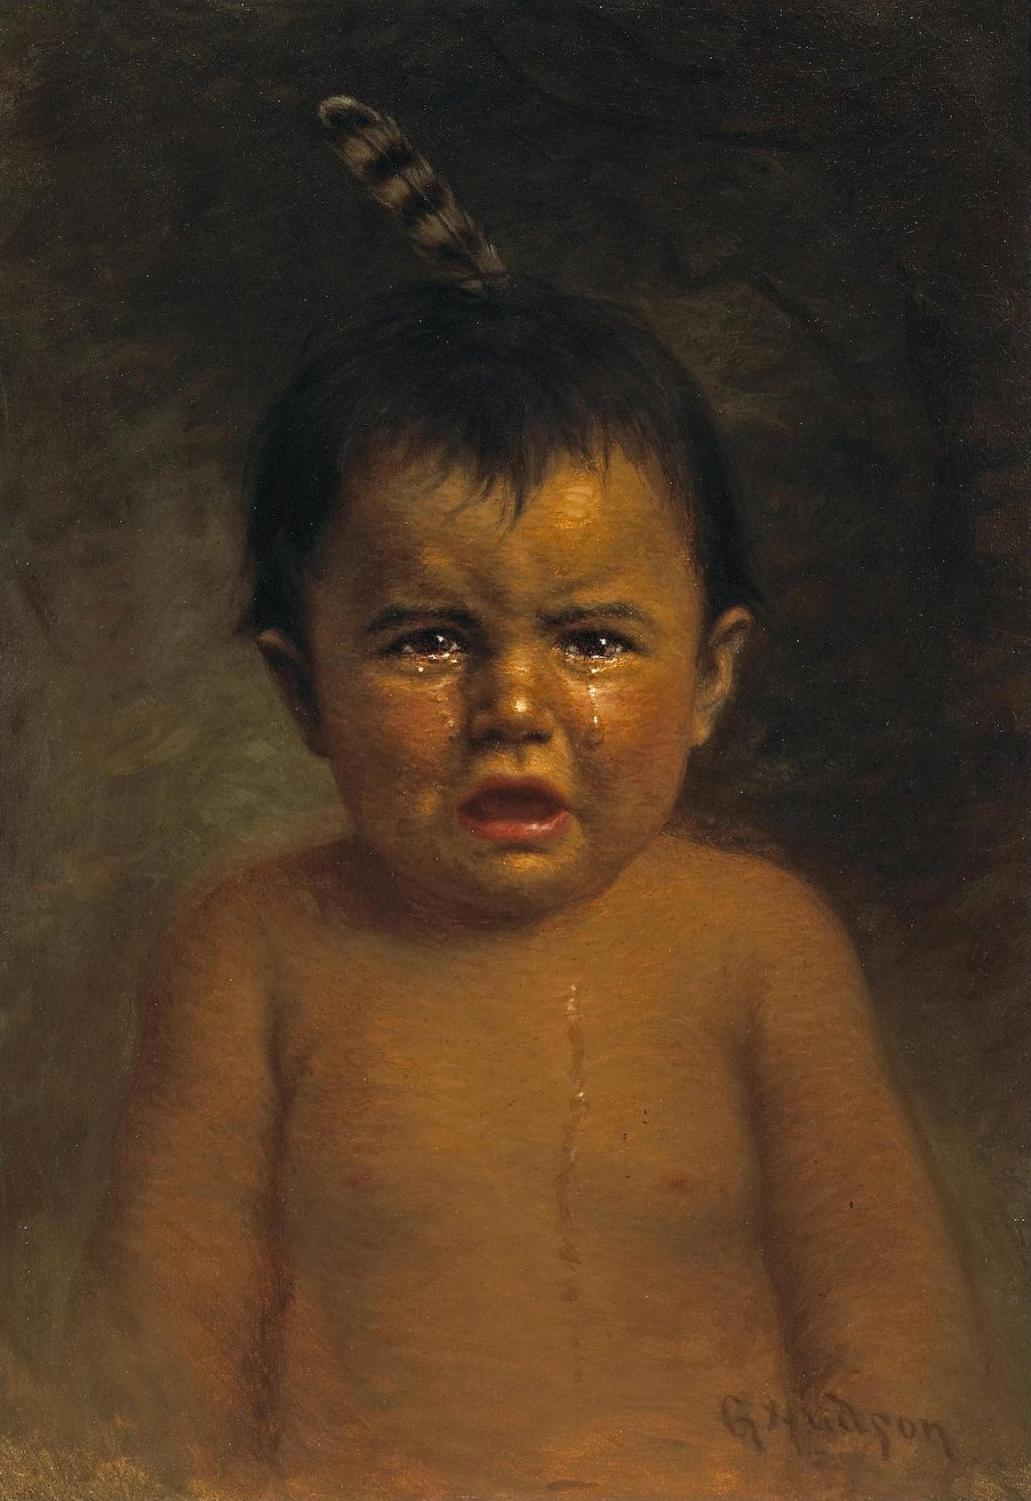 A nineteenth century Native American child cries tears which reflect four hundred years of colonial abuse.